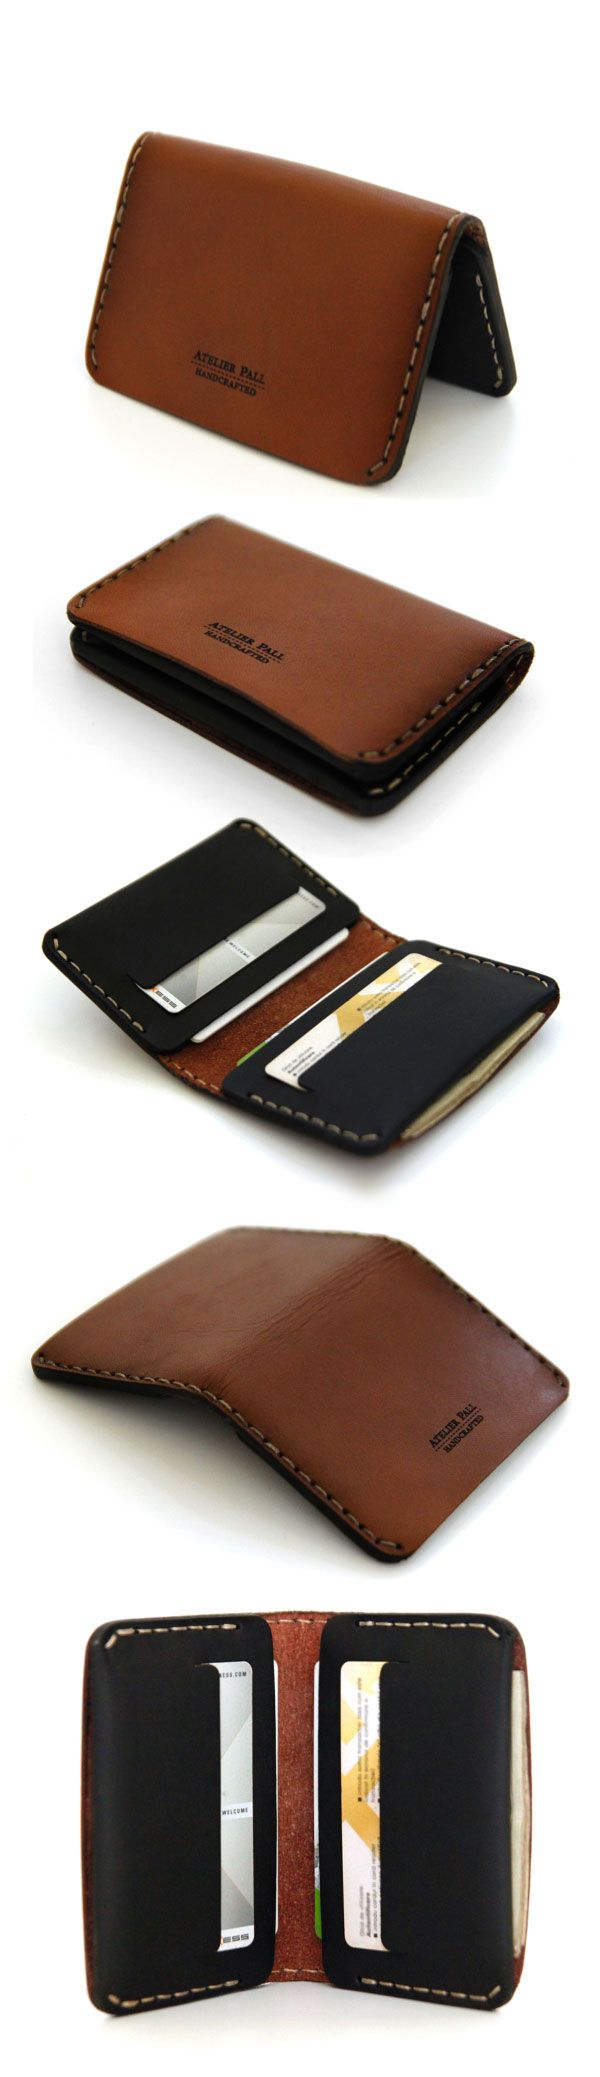 ===> http://www.brand-handbags.net <===More Gorgeous Handbag Collections -Slim Leather Wallet - Airbrushed tan brown